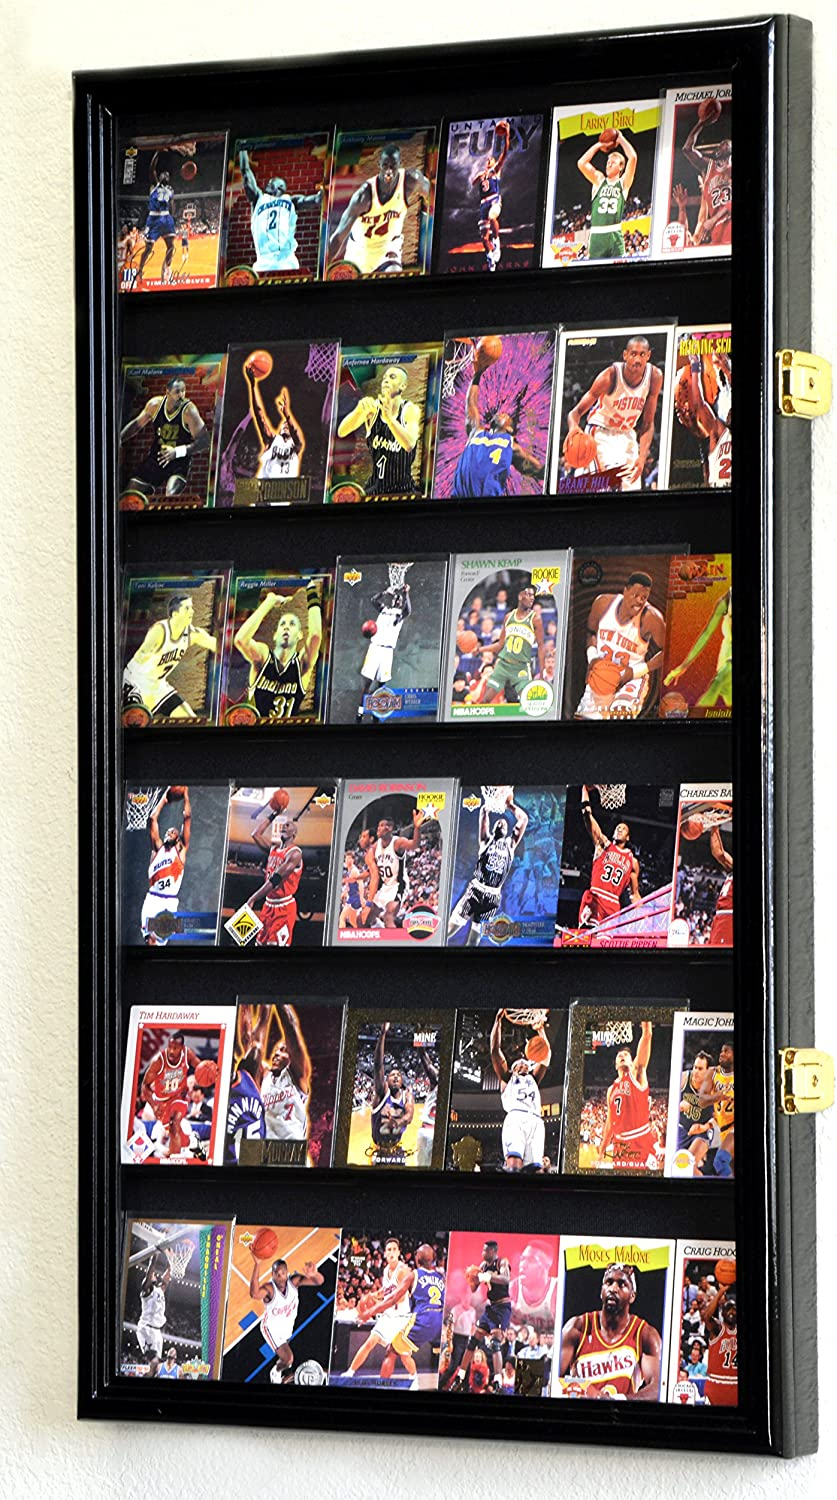 36 Sport Cards Nashville-Davidson Mall Collectible Manufacturer regenerated product Card Cabinet Display Case Wall Holder